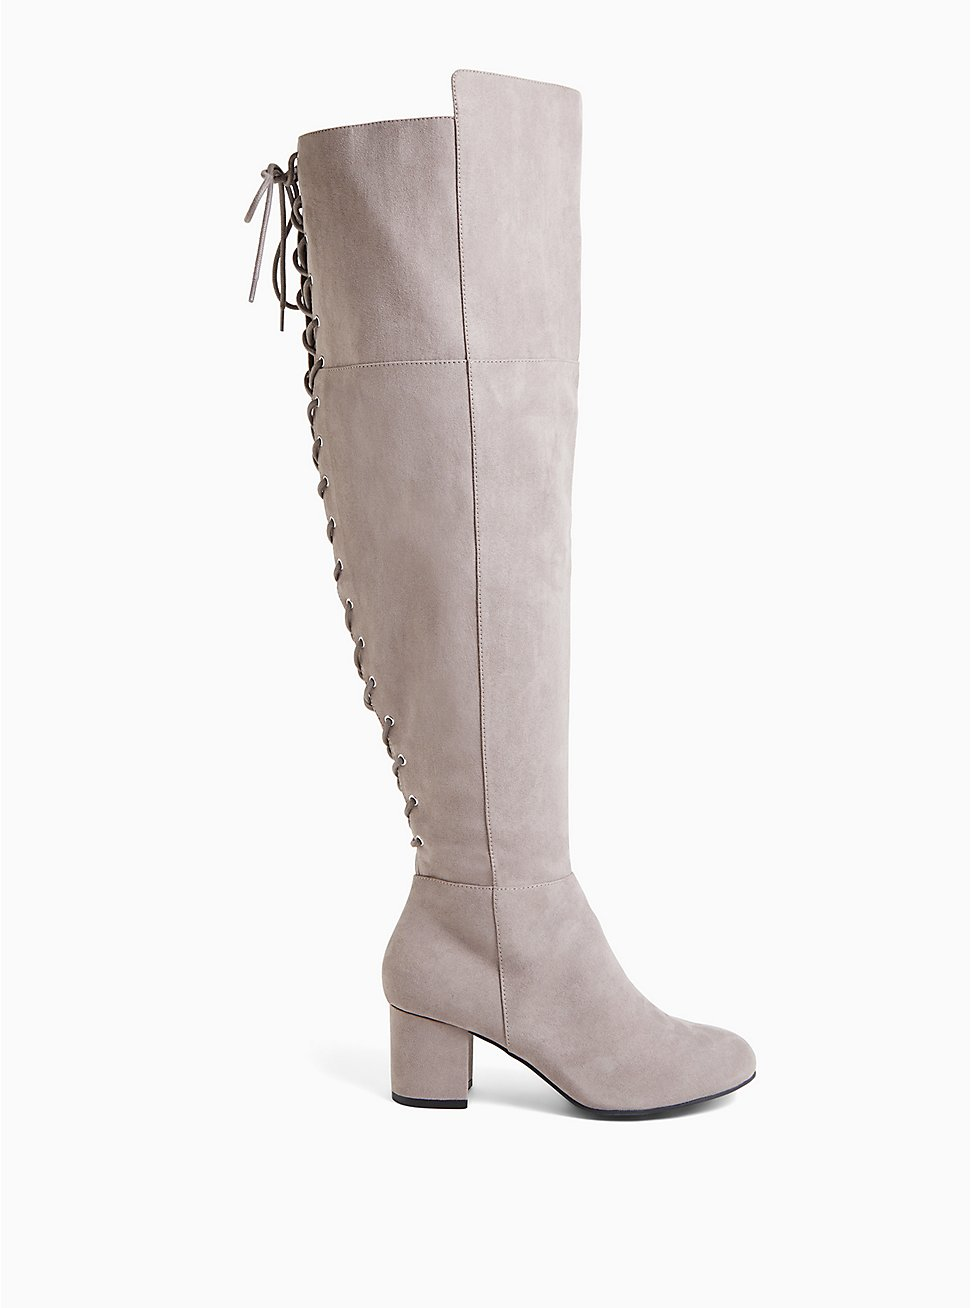 Grey Faux Suede Corset Back Over-the-Knee Boot (WW), GREY, hi-res